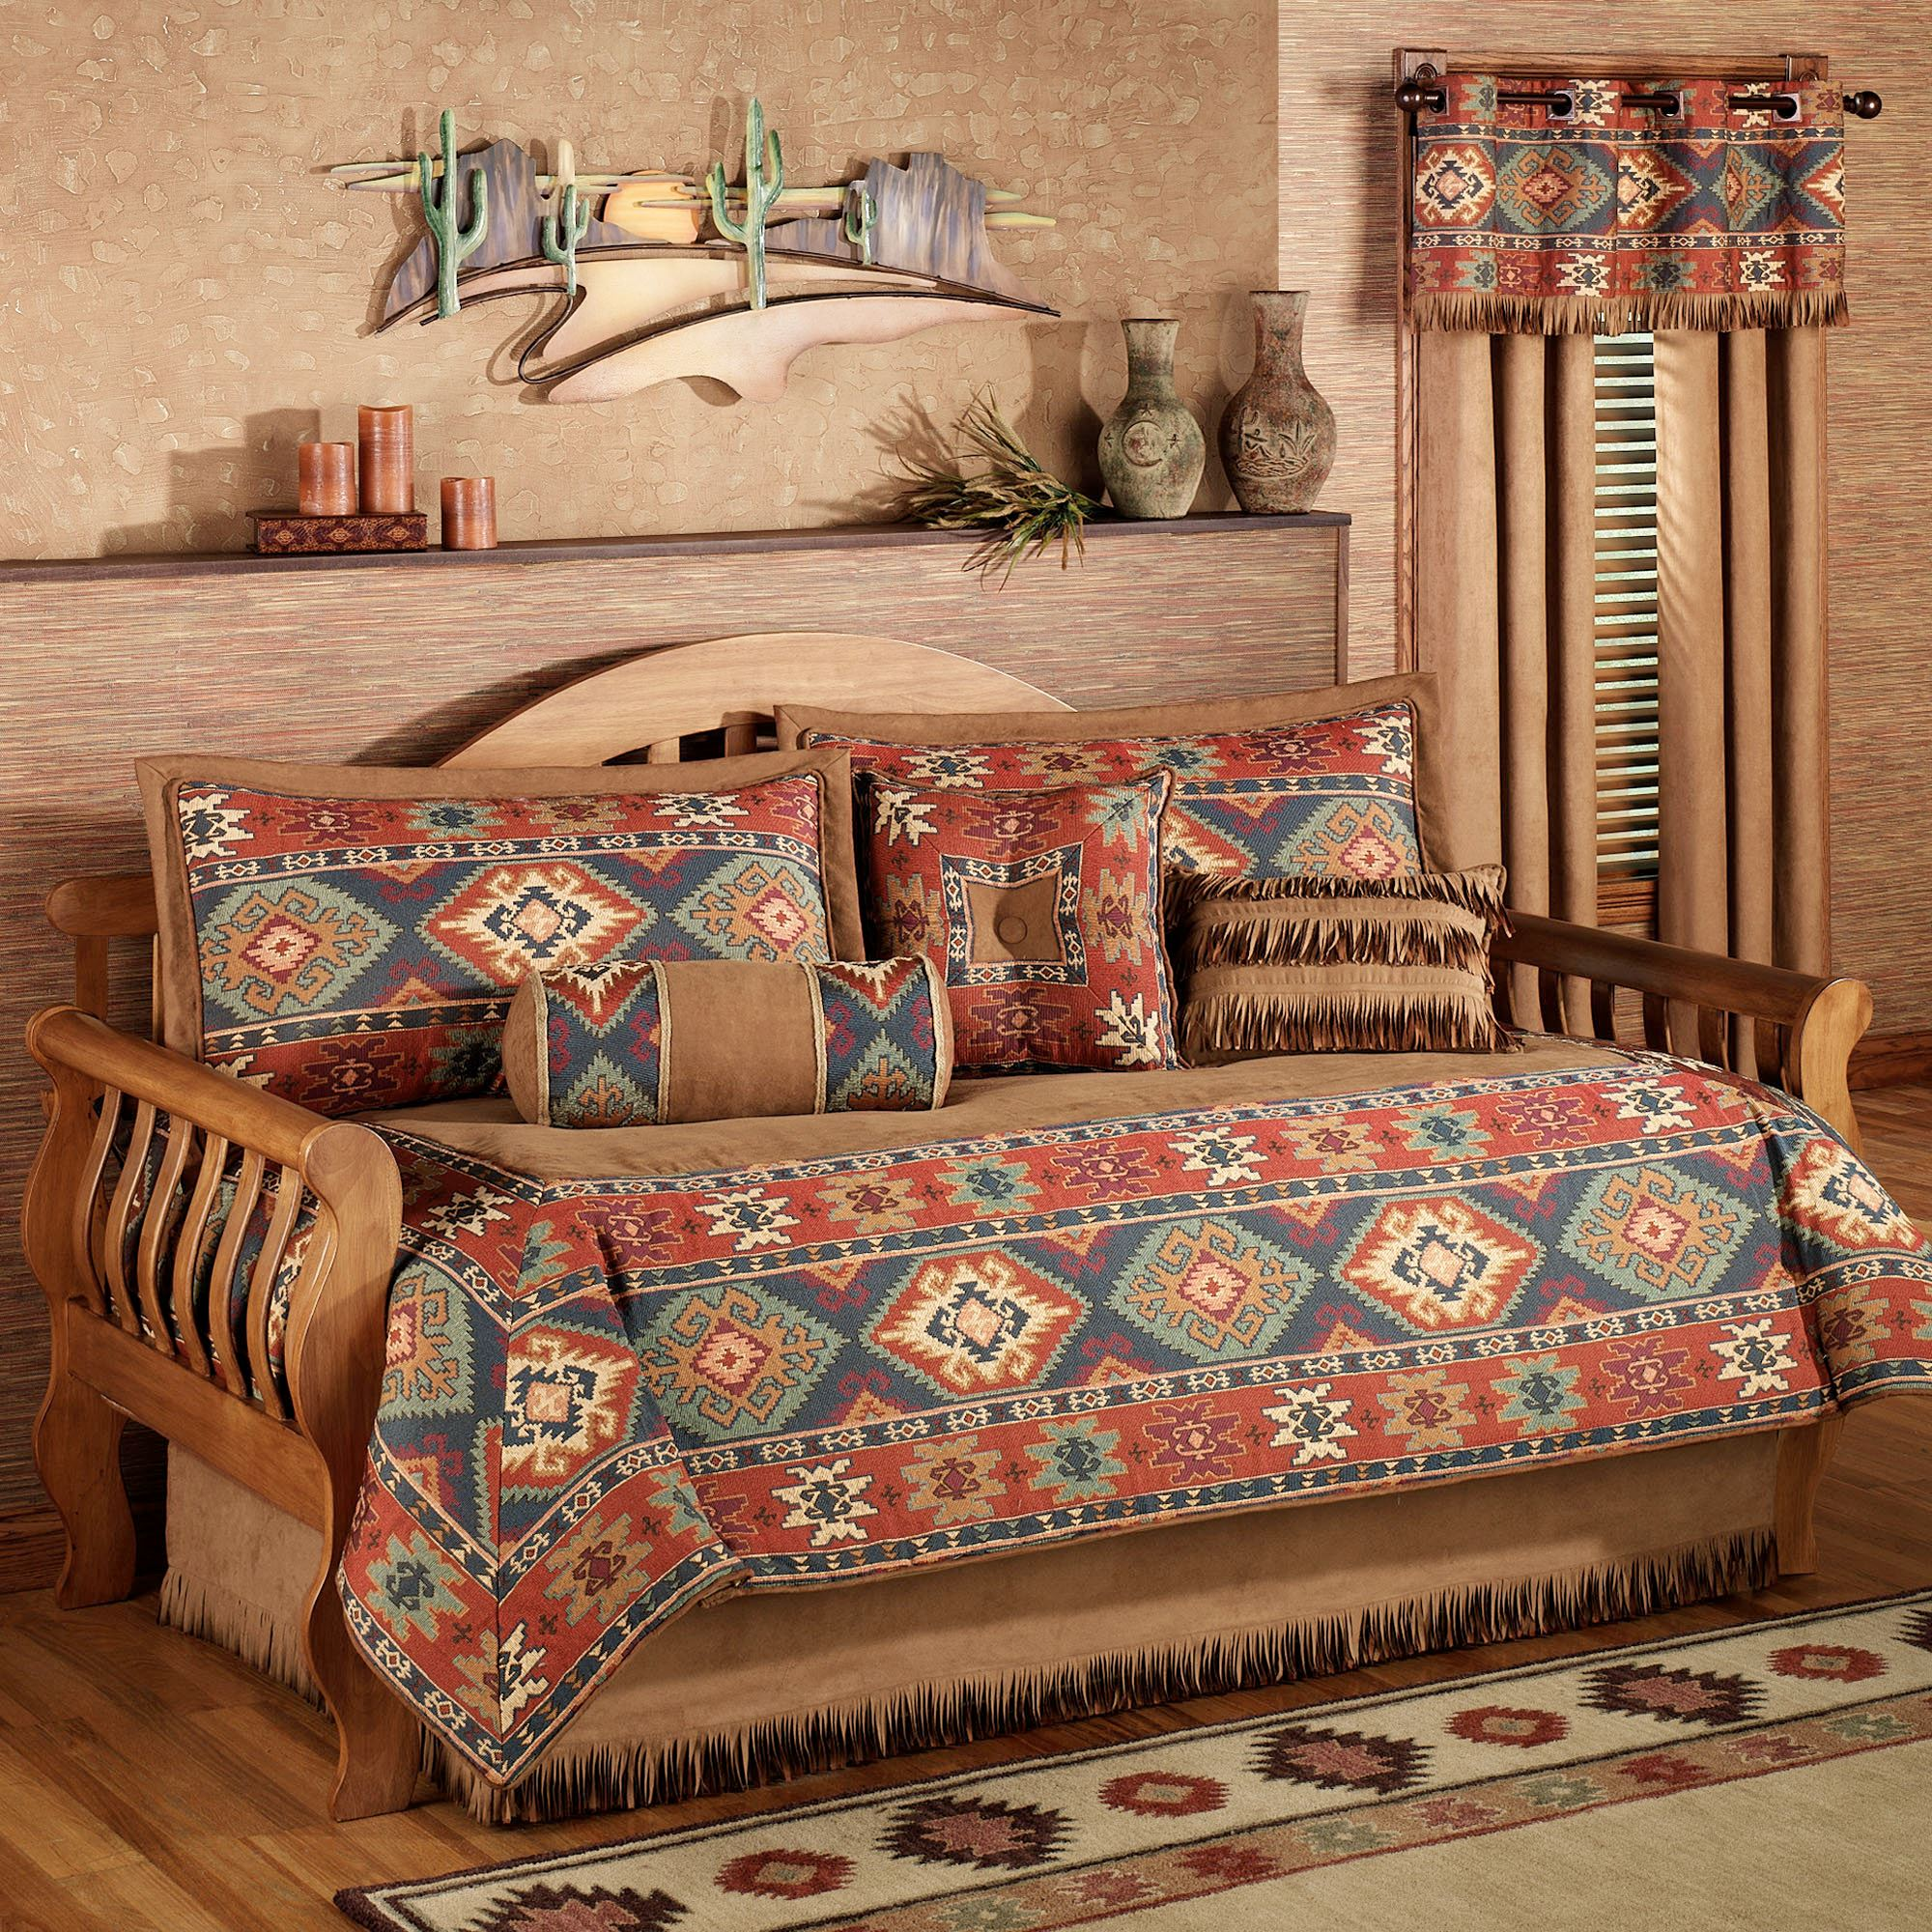 sets quilts trundle clearance bed bedding day project daybed stylish sewn quilt